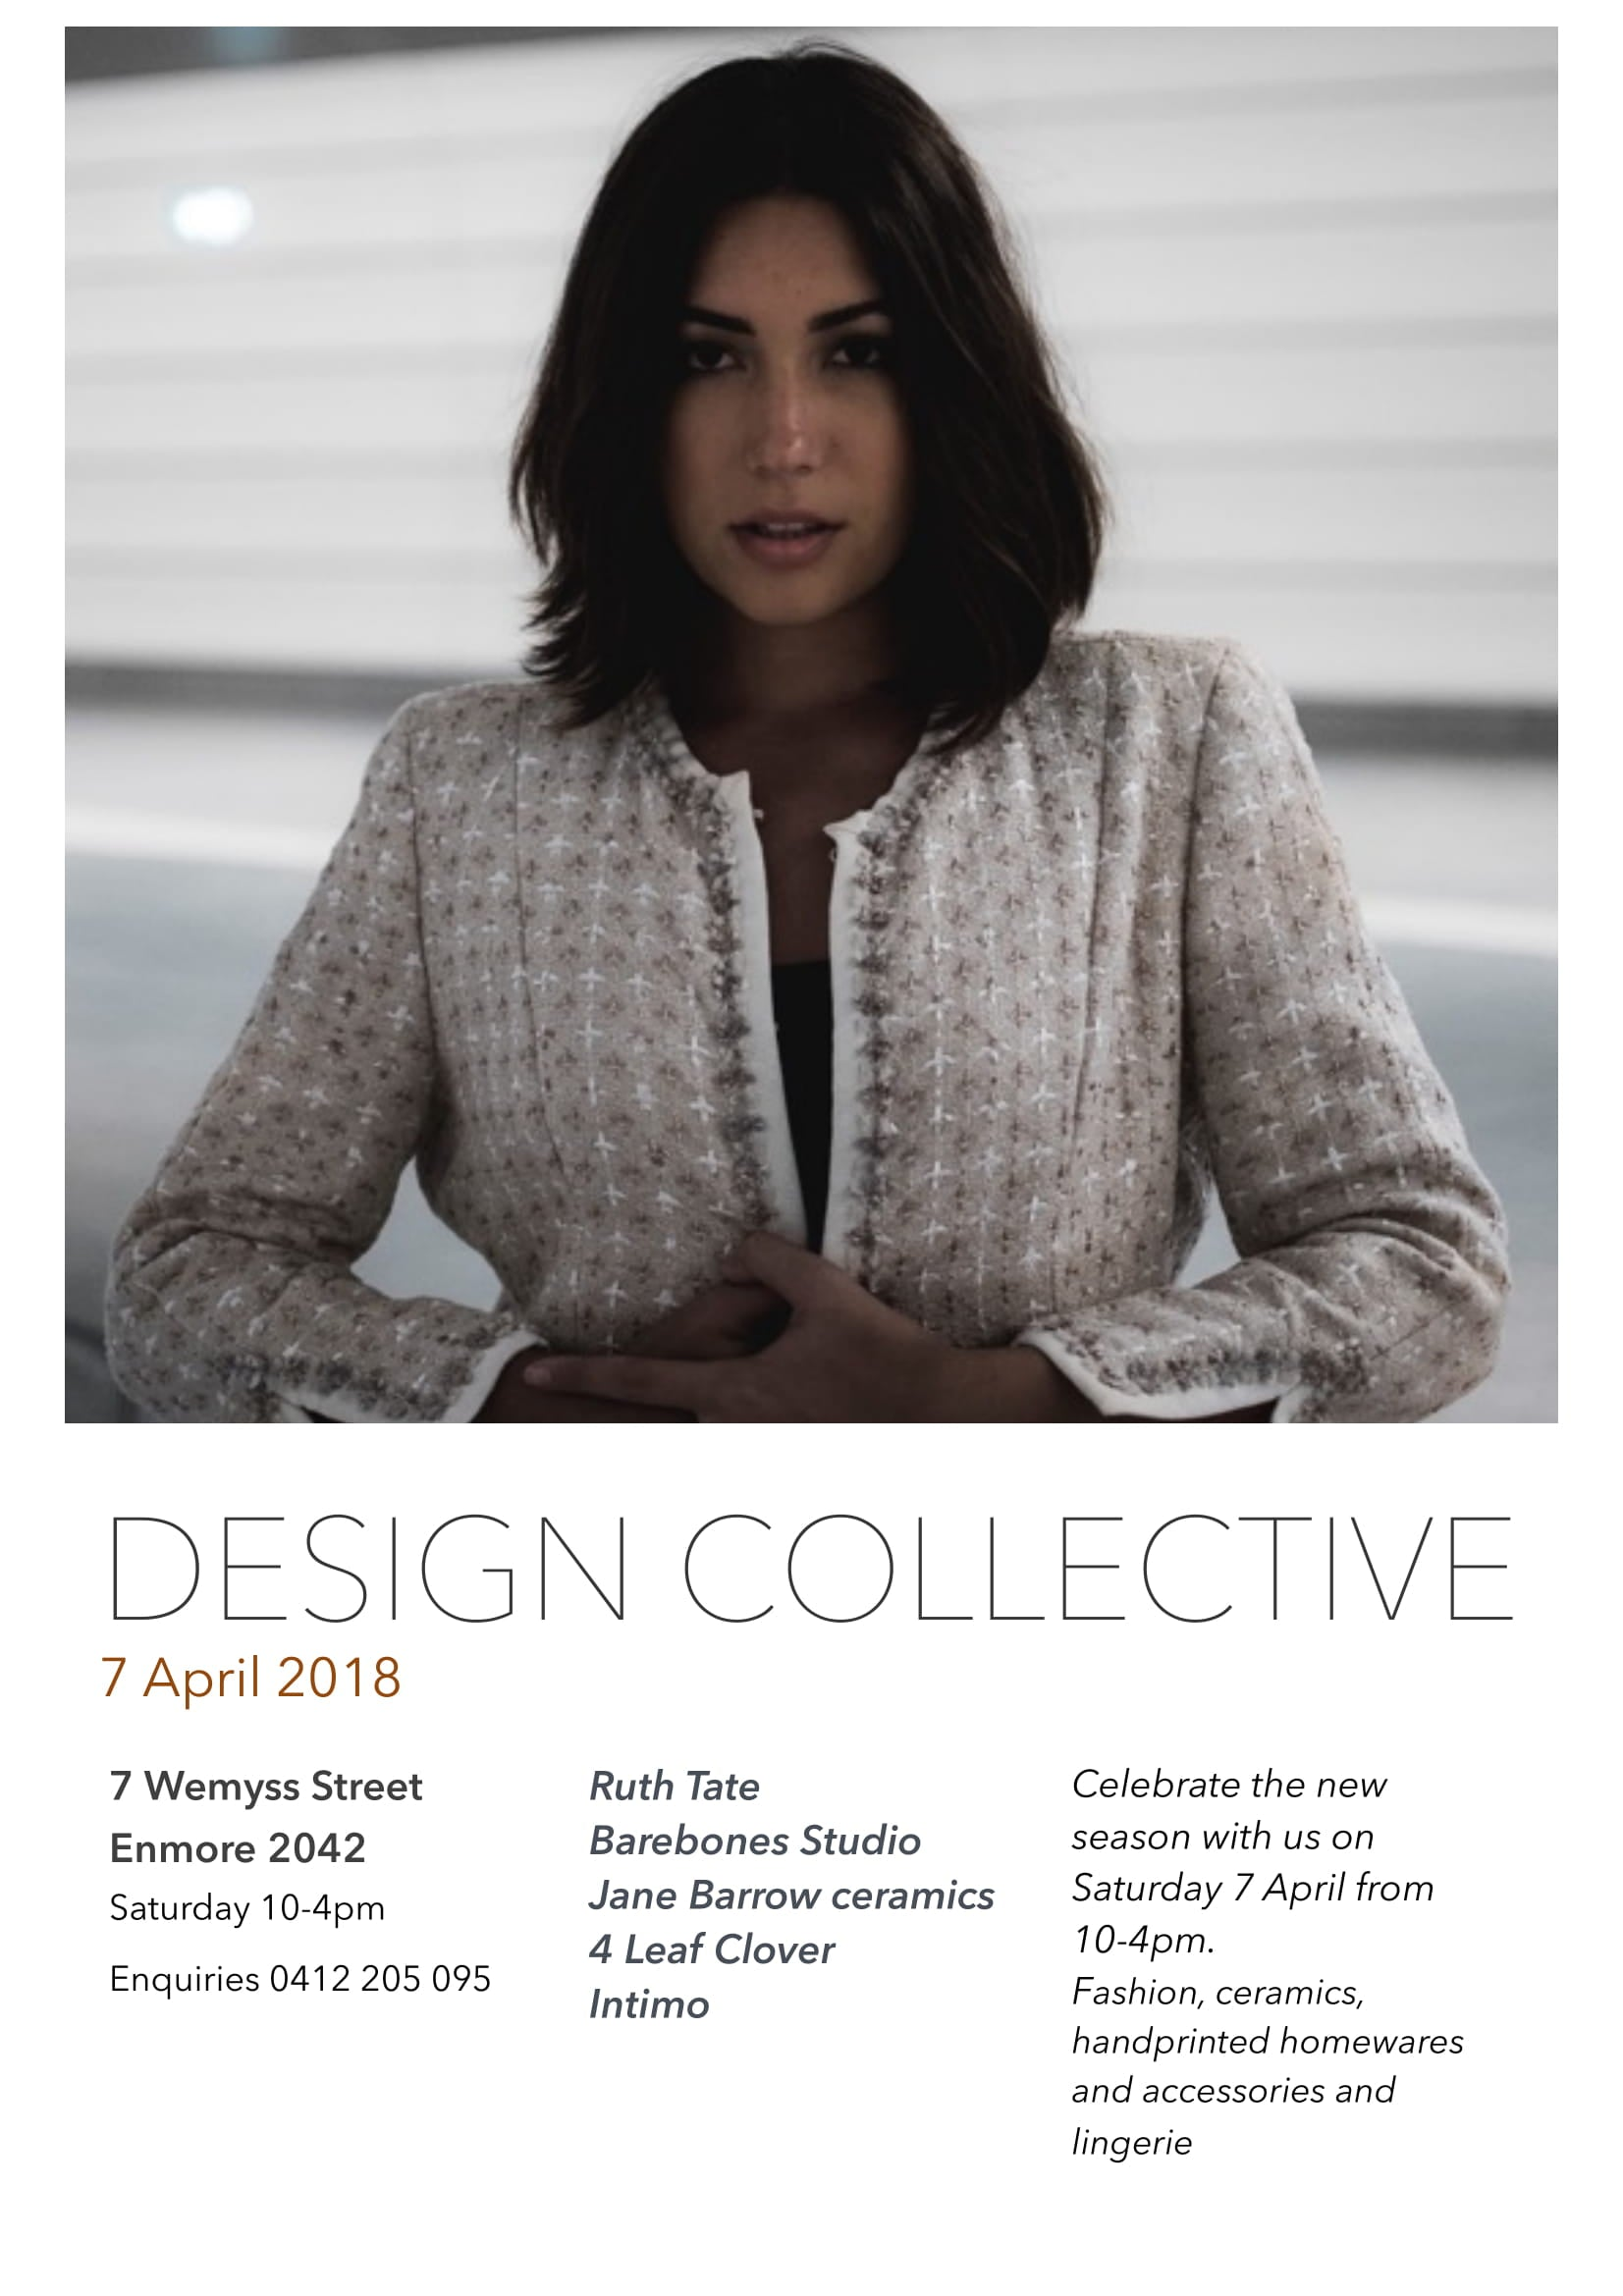 Design Collective 7 April 2018